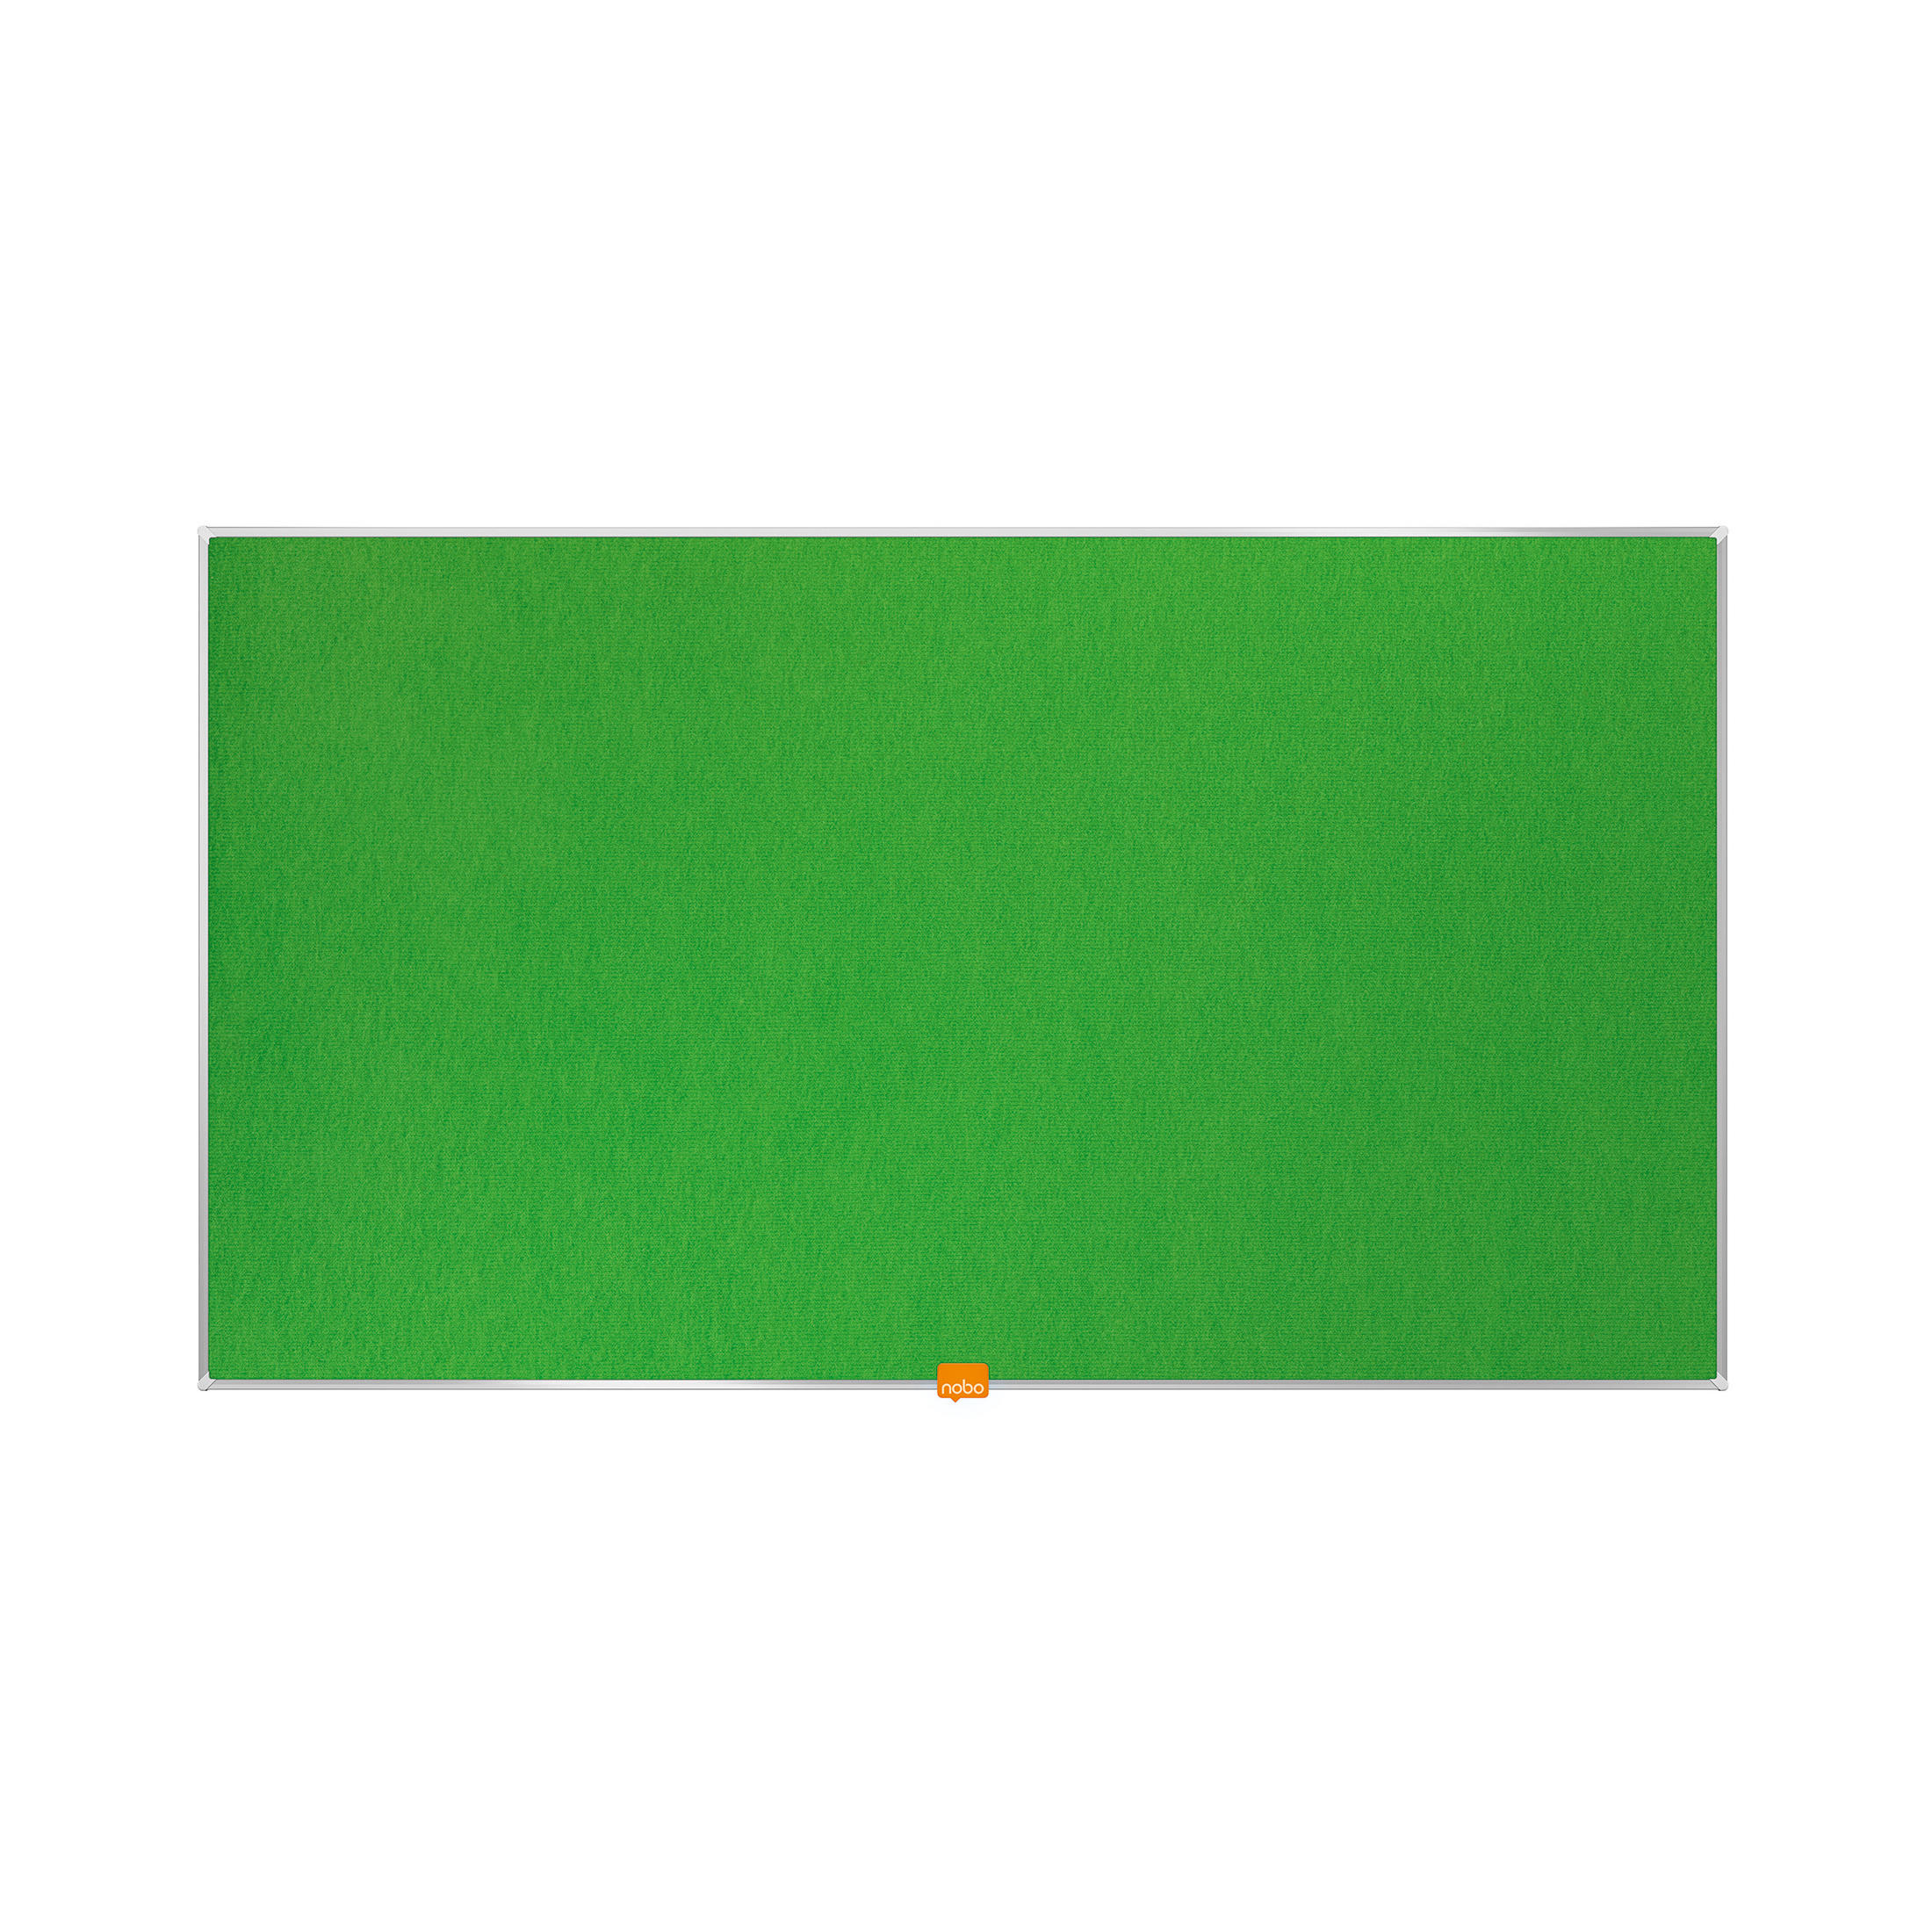 Bulletin boards or accessories Nobo 40 inch Widescreen Felt Board 890x500mm Green Ref 1905315